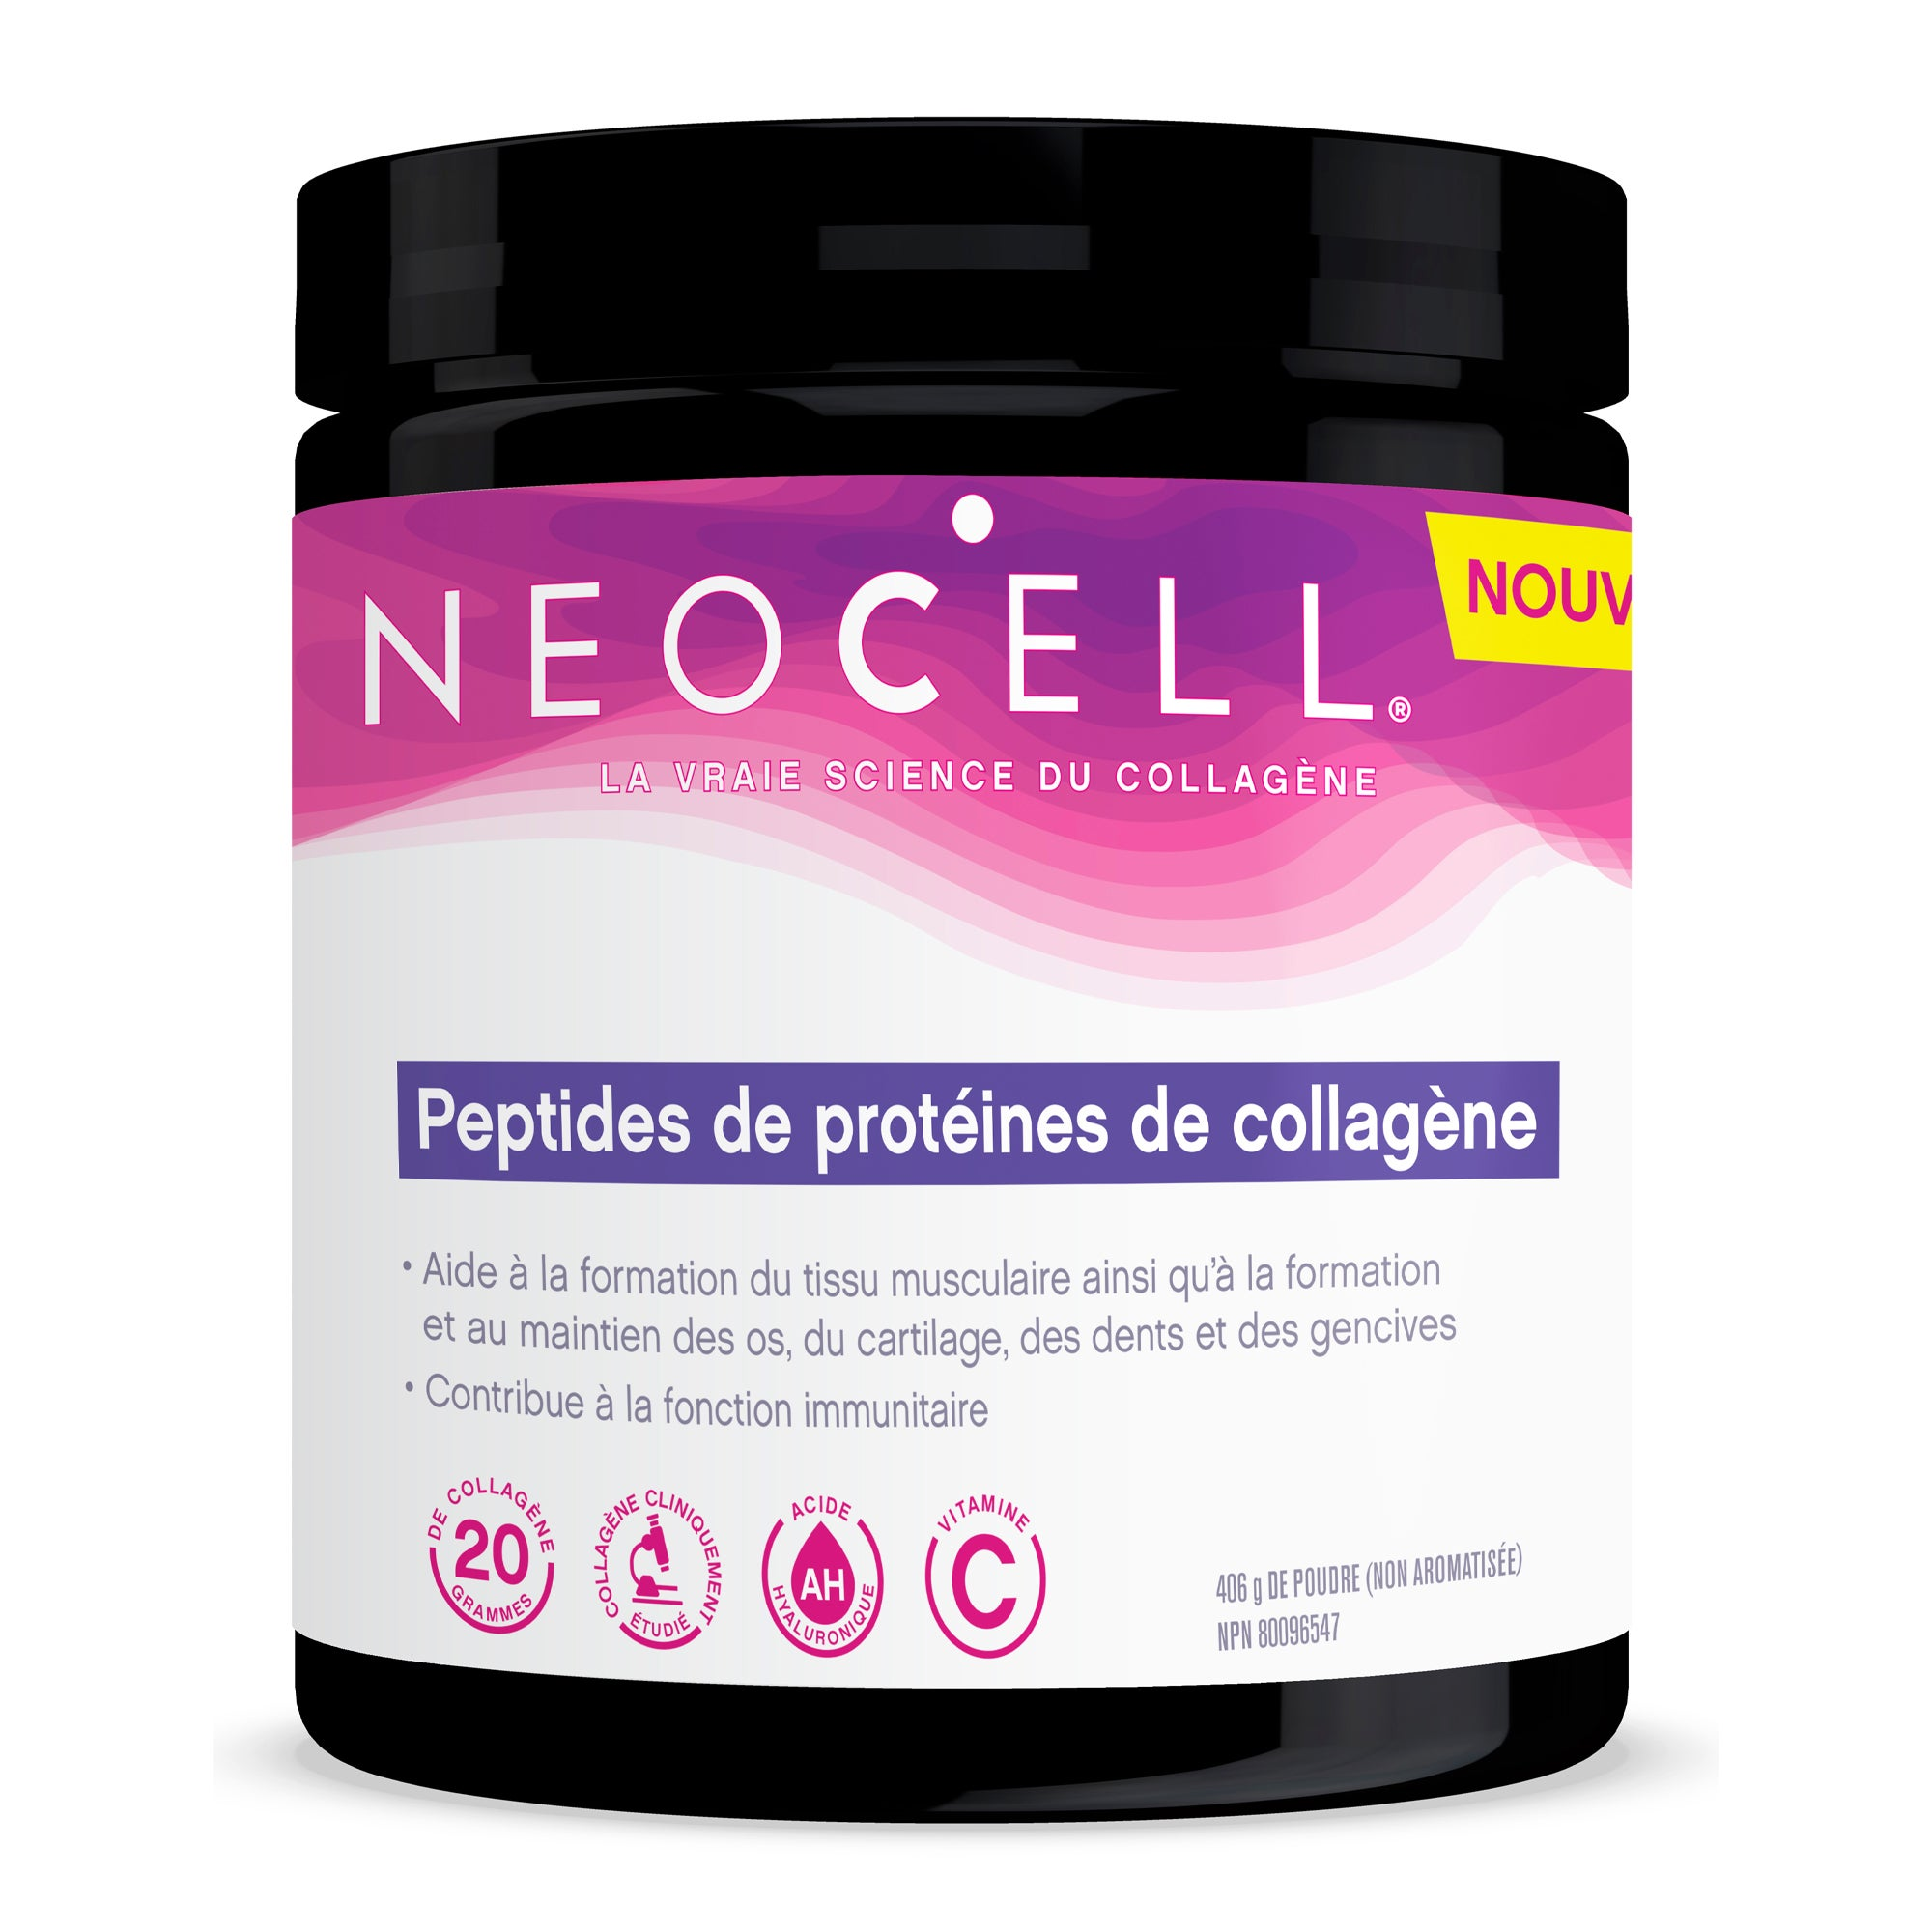 NeoCell Collagen Protein Peptides FRE (3)